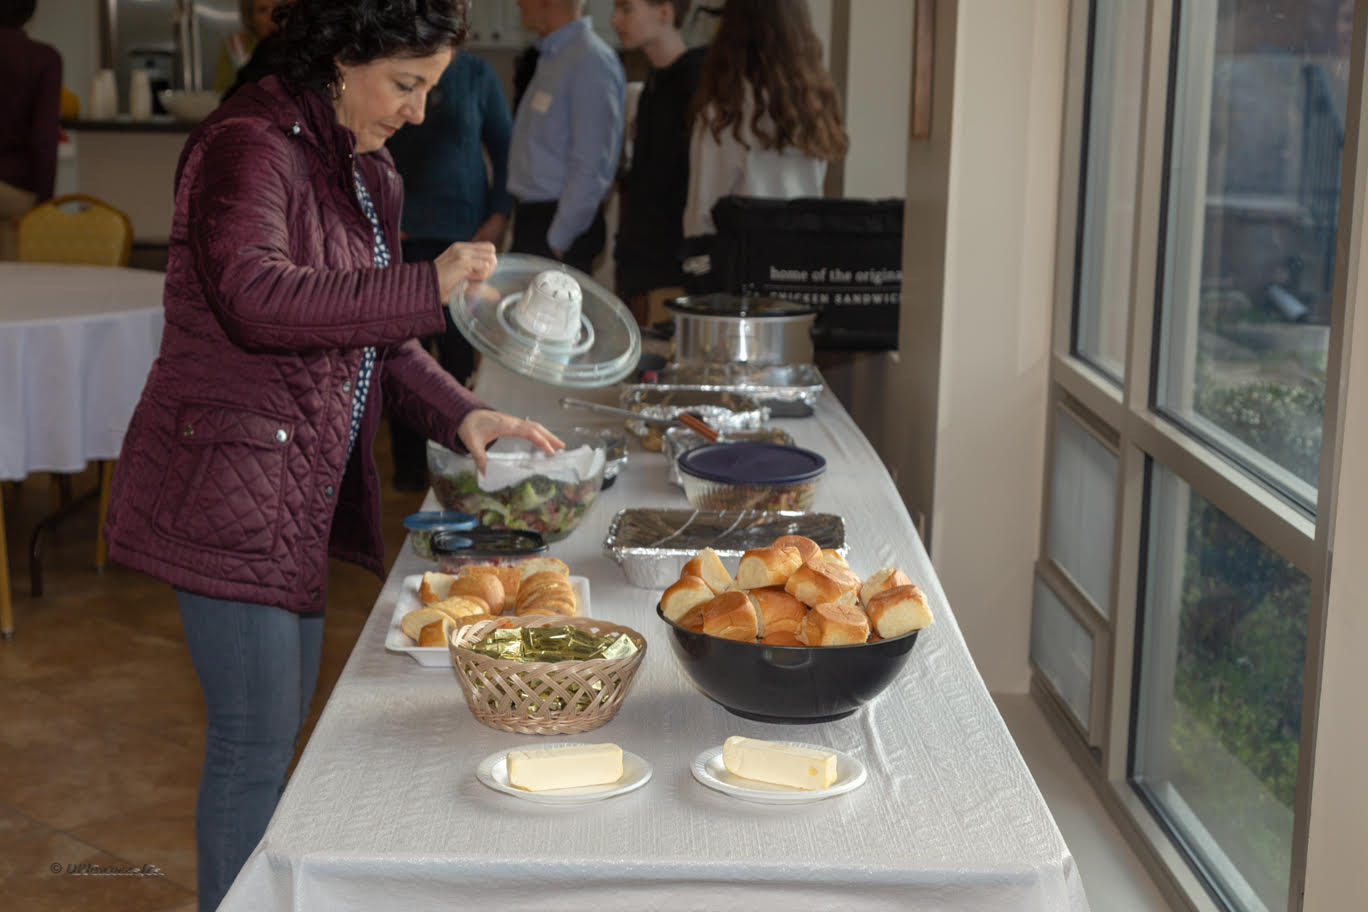 Fellowship and Food - The meal was very successful thanks to many hands!